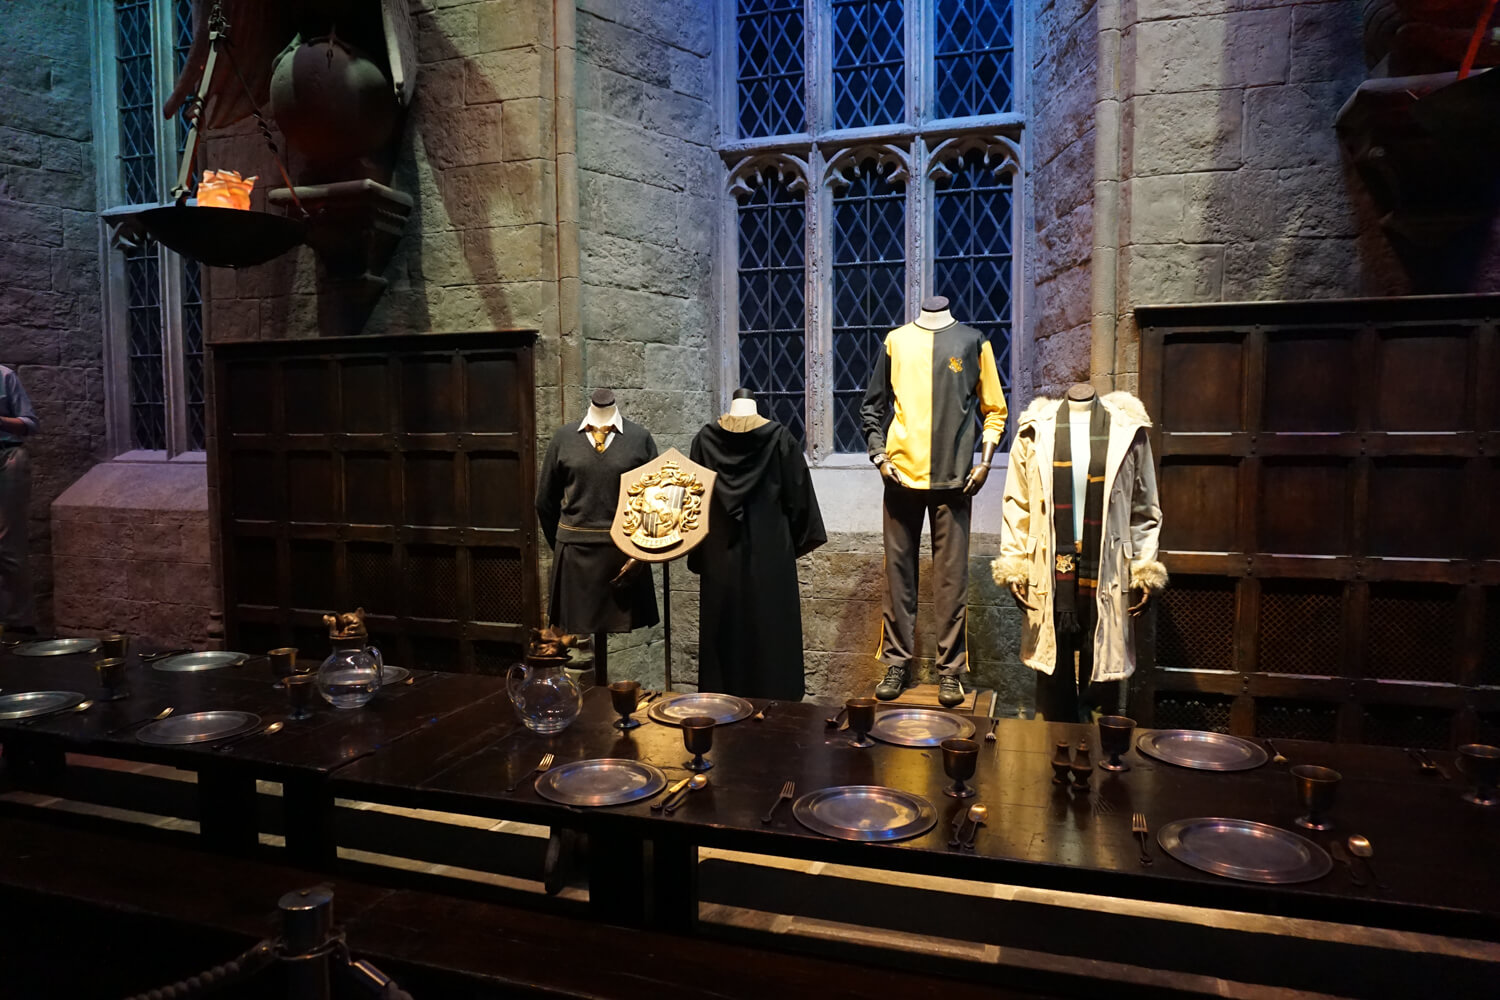 5-Day London Itinerary: Harry Potter Studio Tour